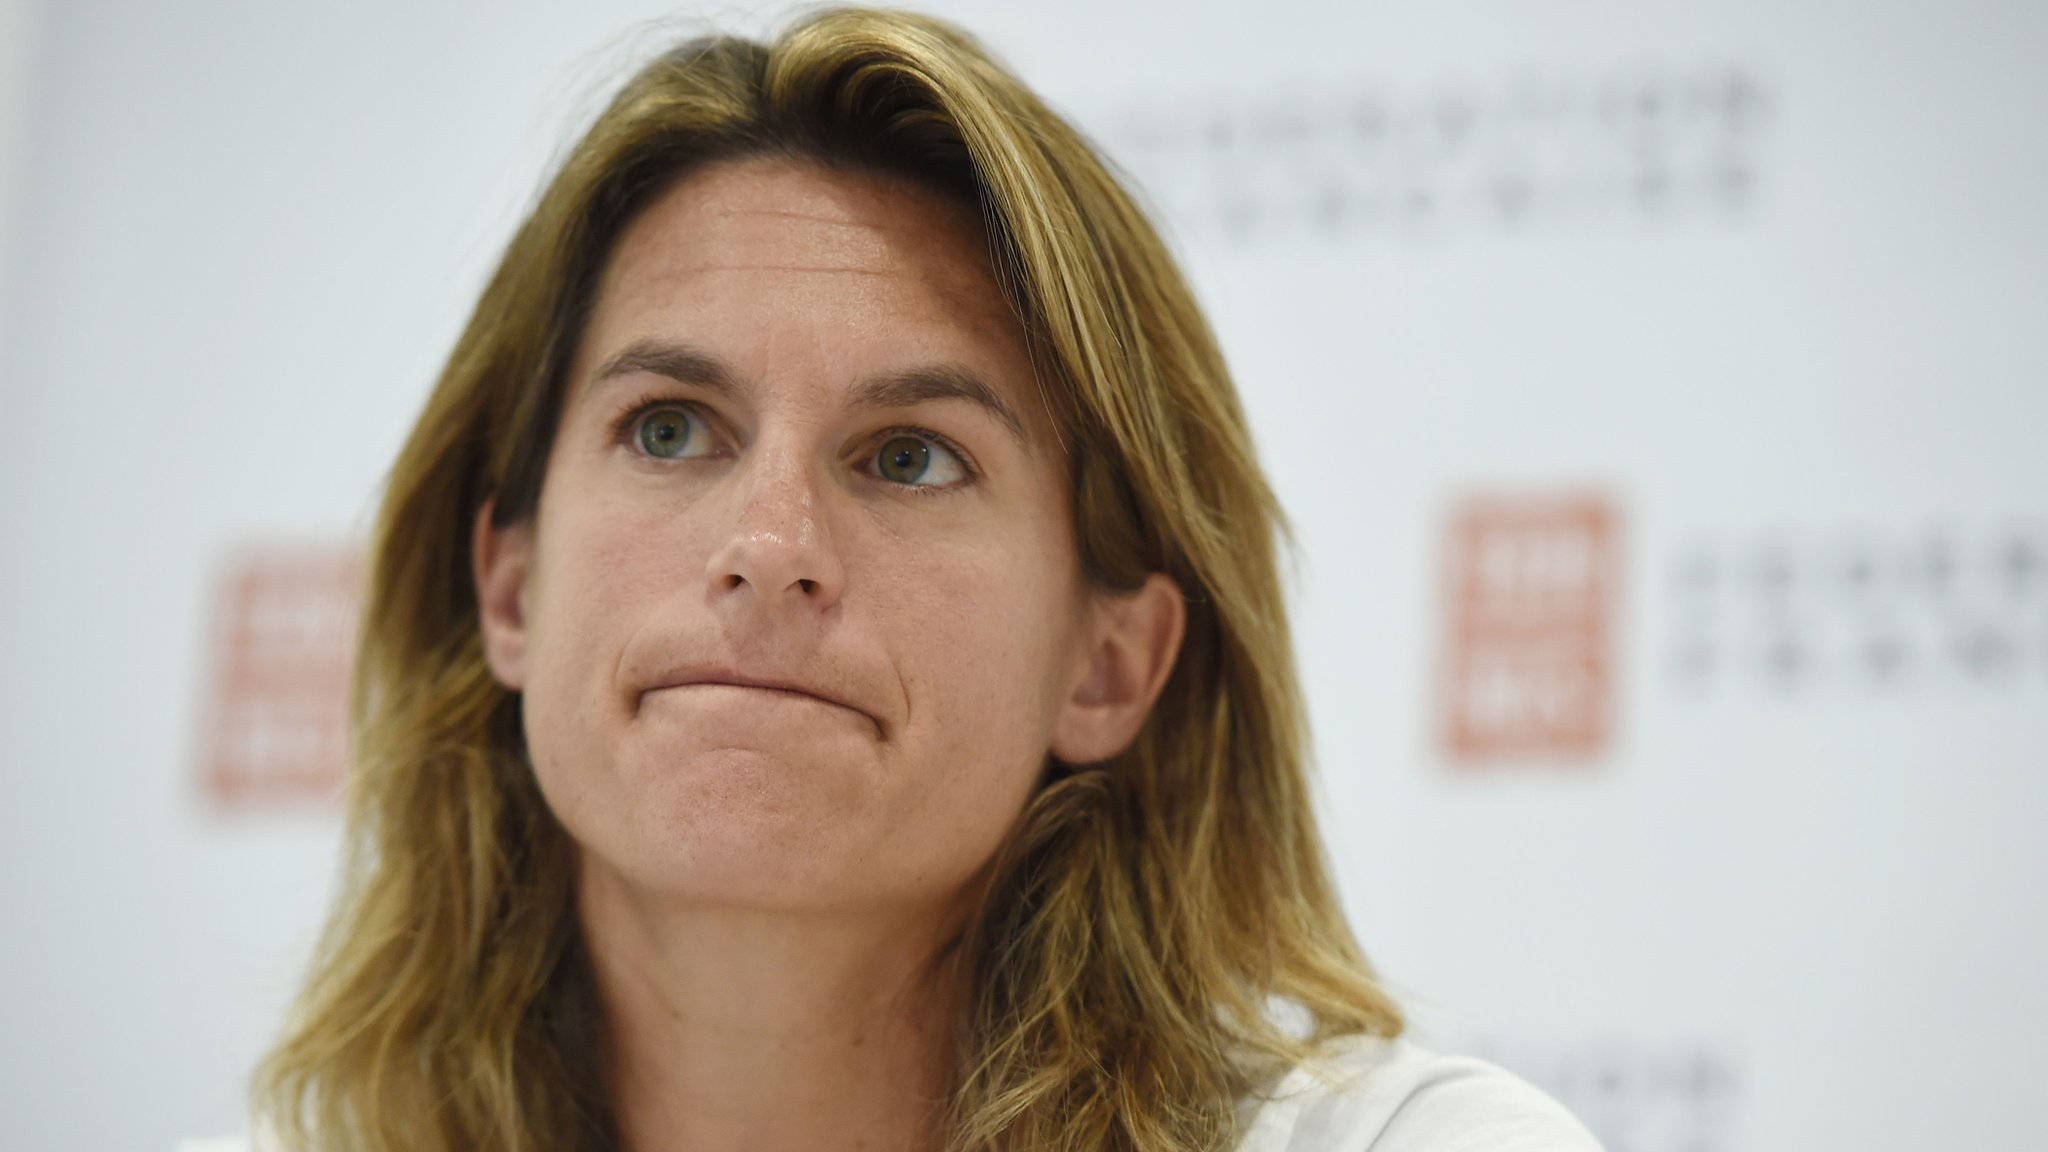 Amelie Mauresmo withdraws as France Davis Cup captain to coach Lucas Pouille